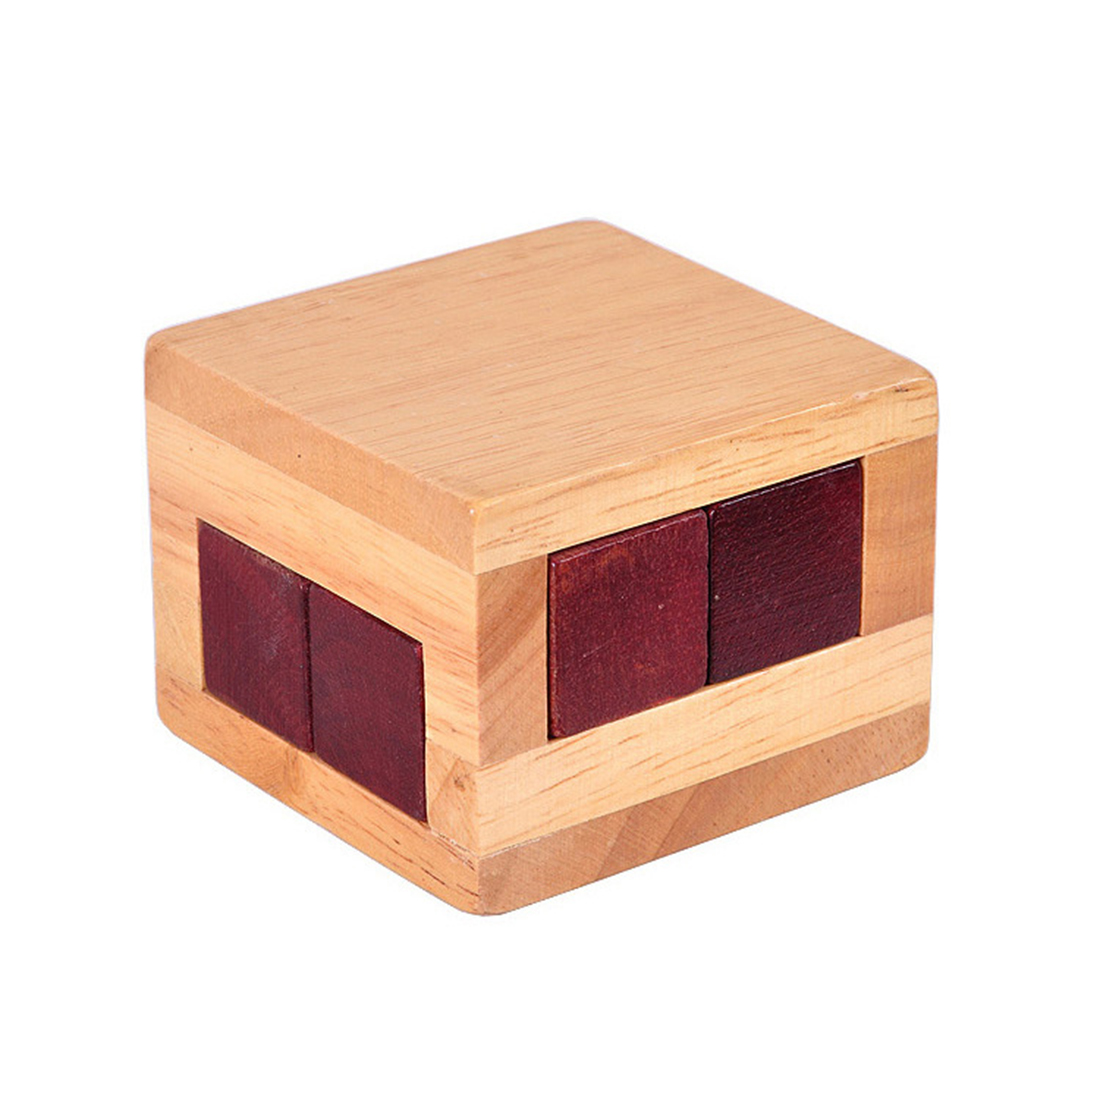 Surwish Wooden Luban Lock Magic Box Puzzle Game Educational Toys for Children Adult – L